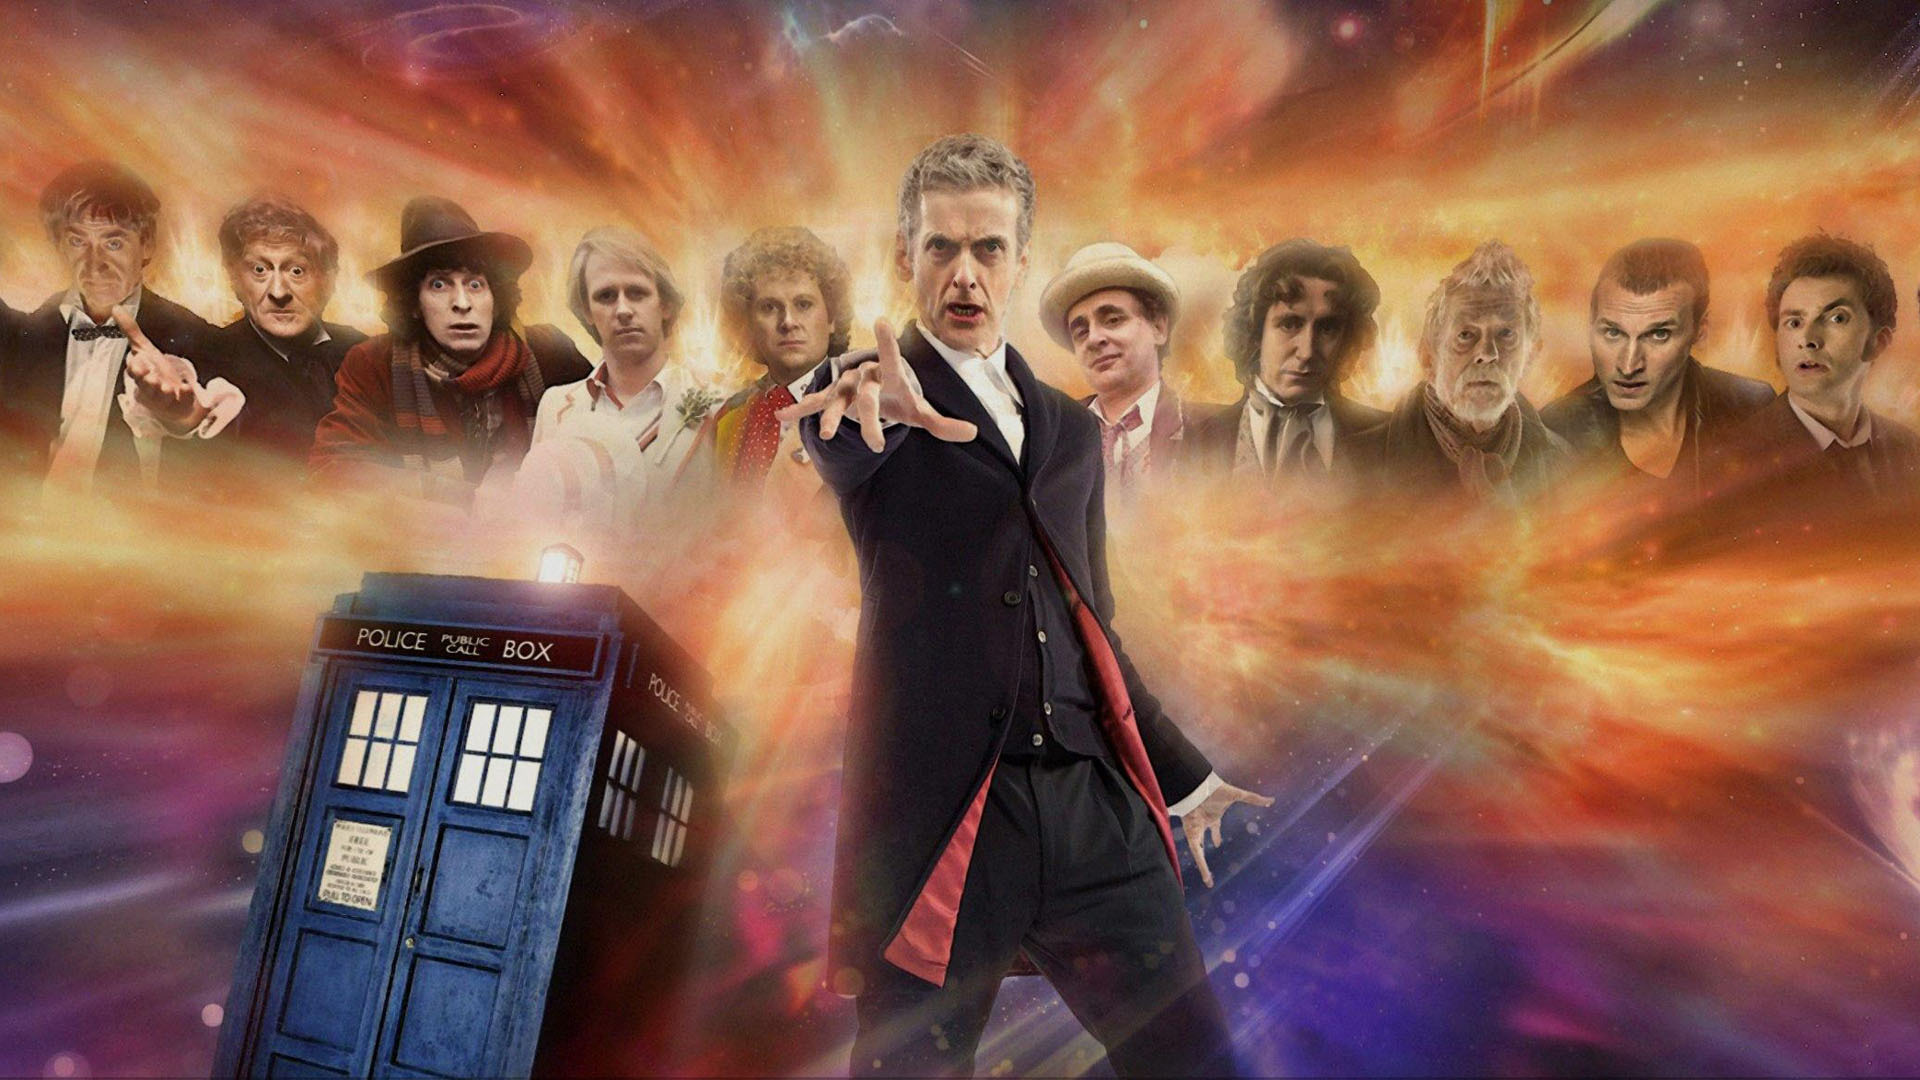 dr who wallpaper 8 - photo #17